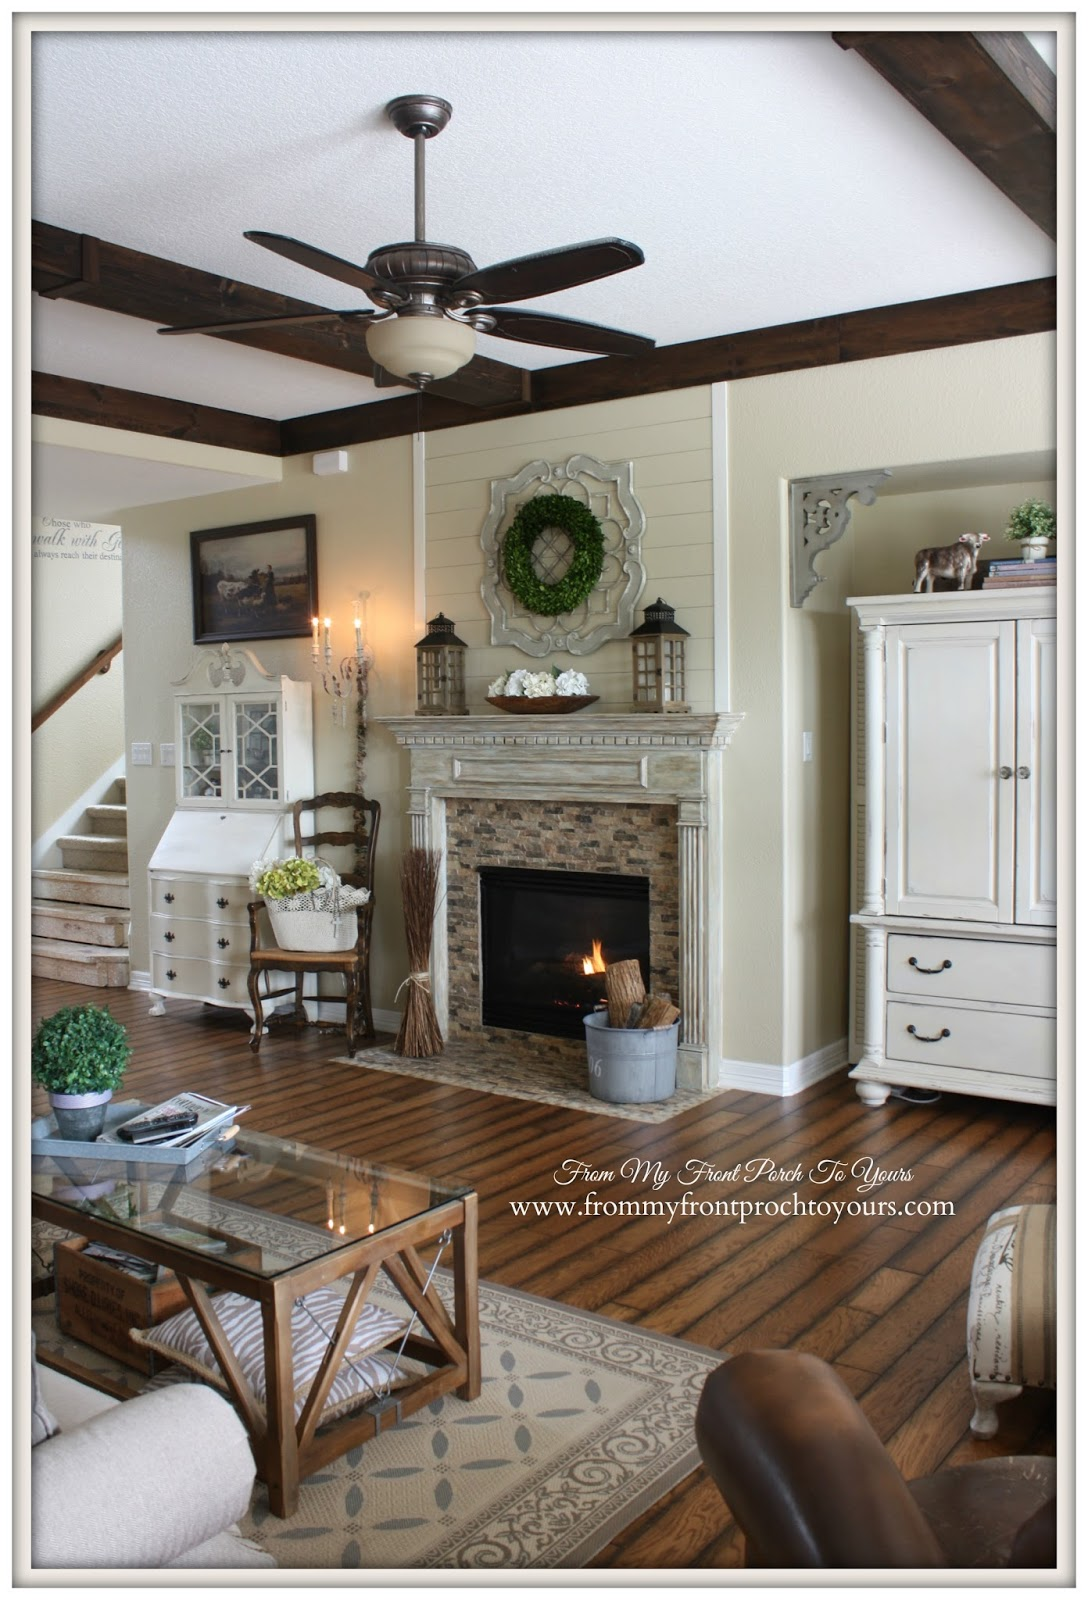 French Farmhouse DIY Wood Beams in living room.- From My Front Porch To Yours